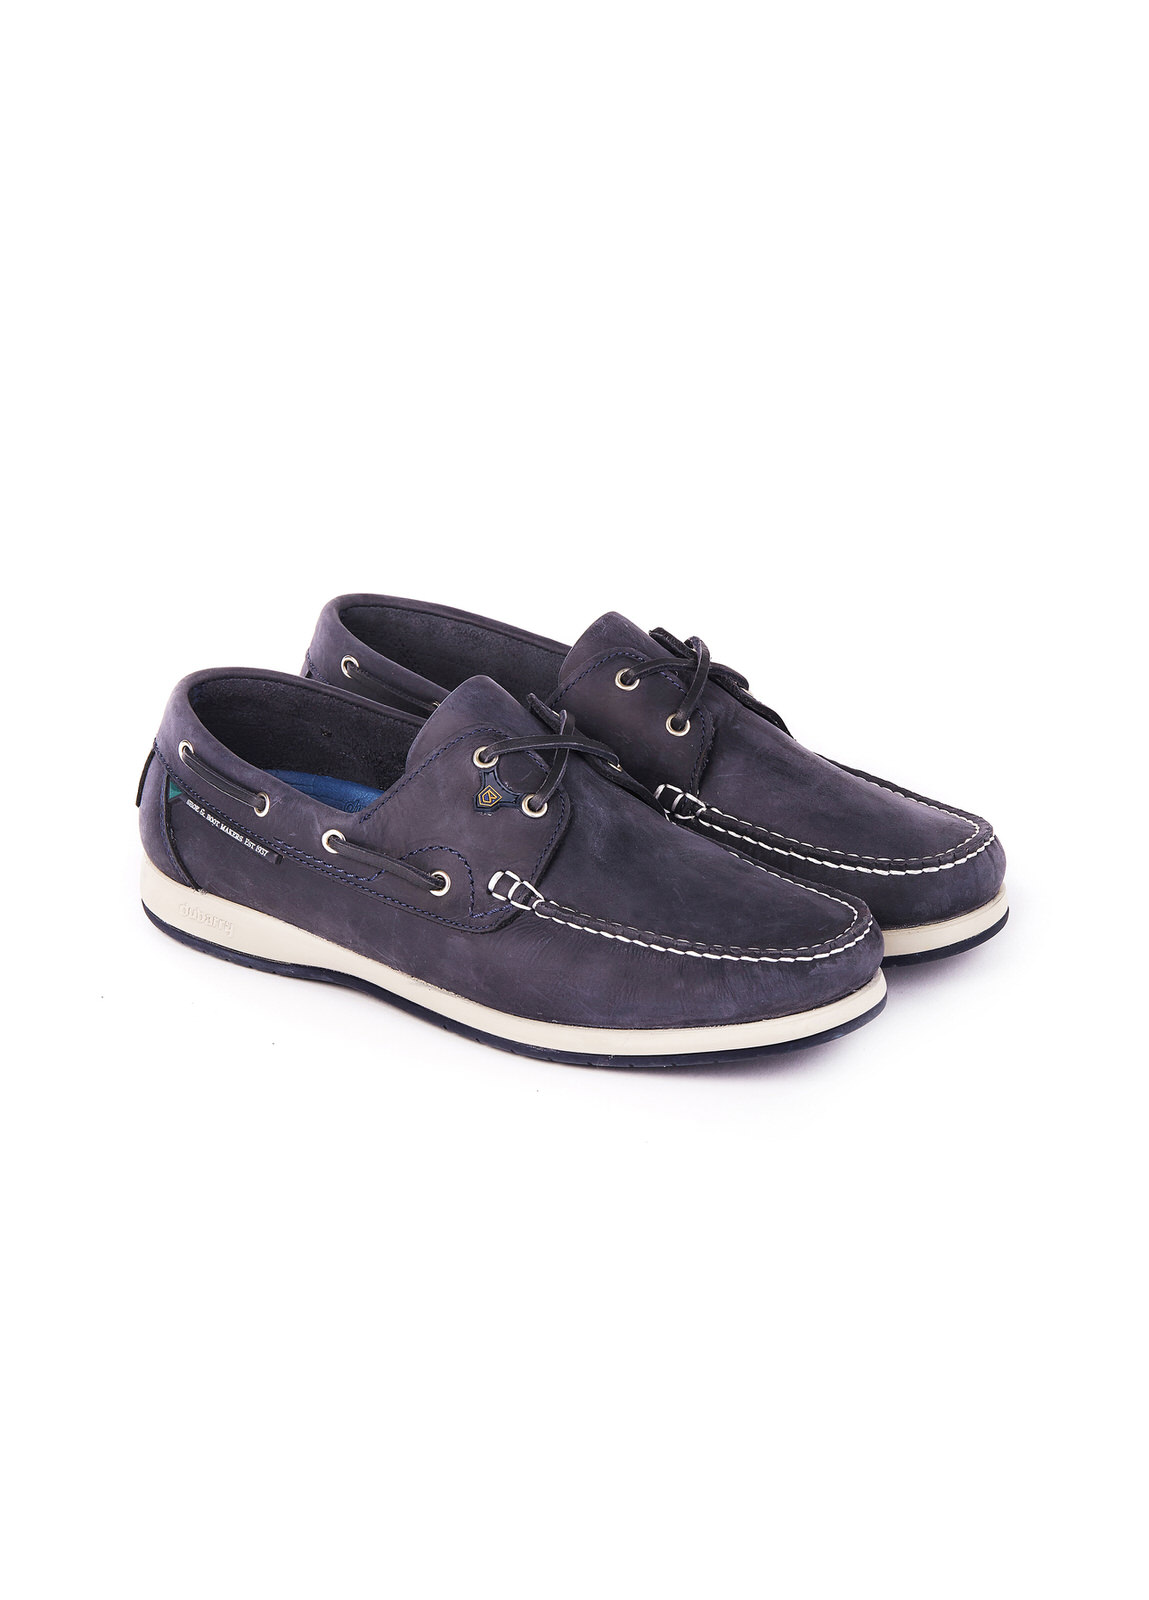 Sailmaker_X_LT_Deck_Shoe_Navy_Image_1